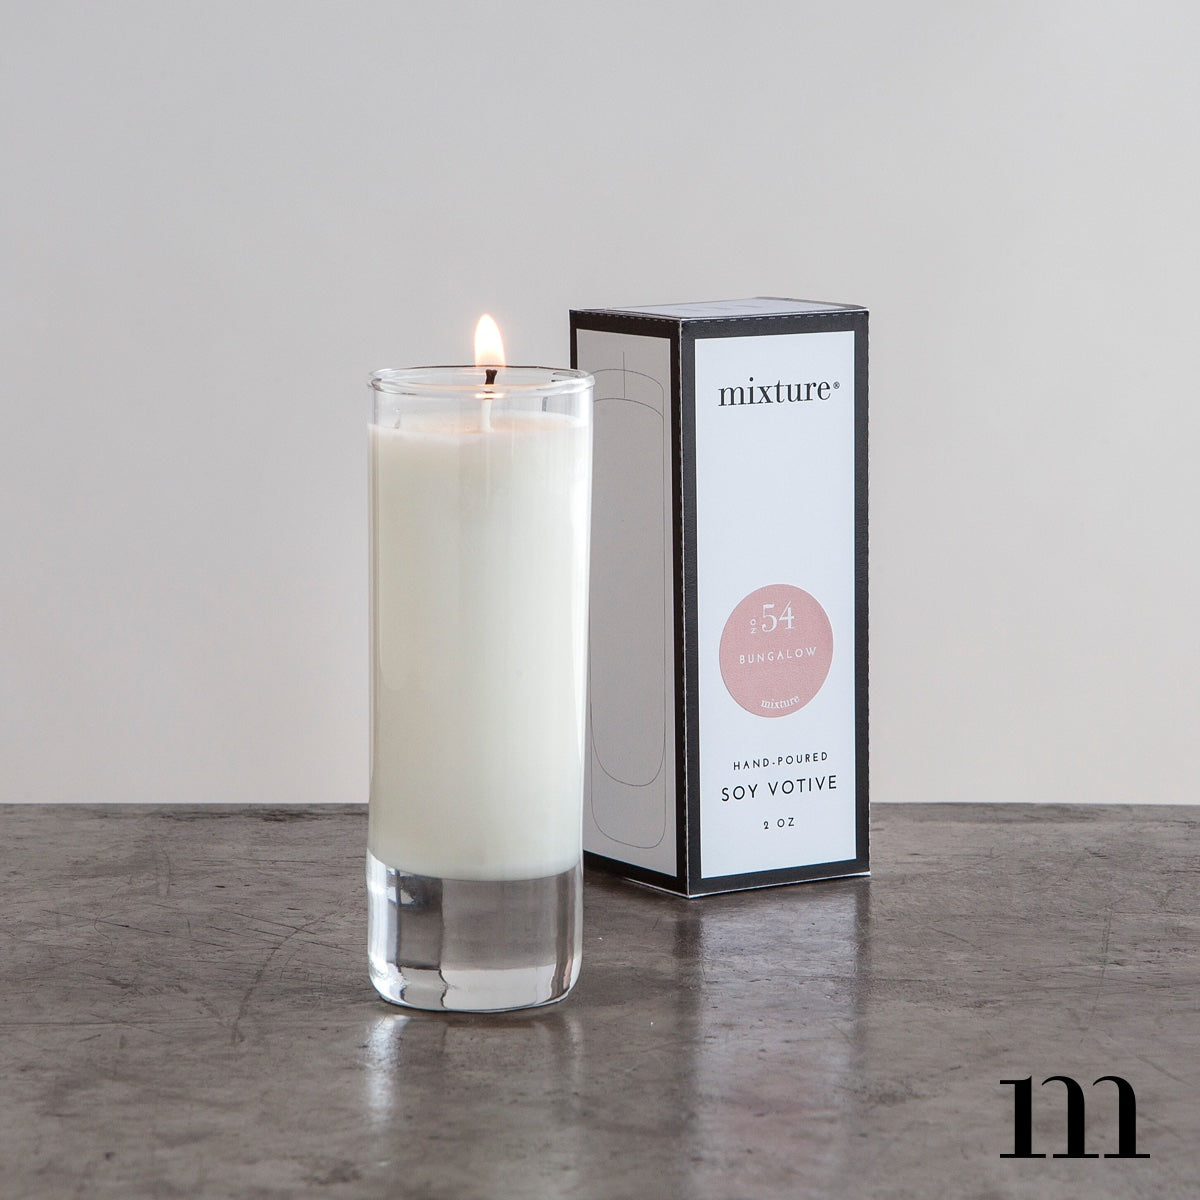 Mixture Votive Candle